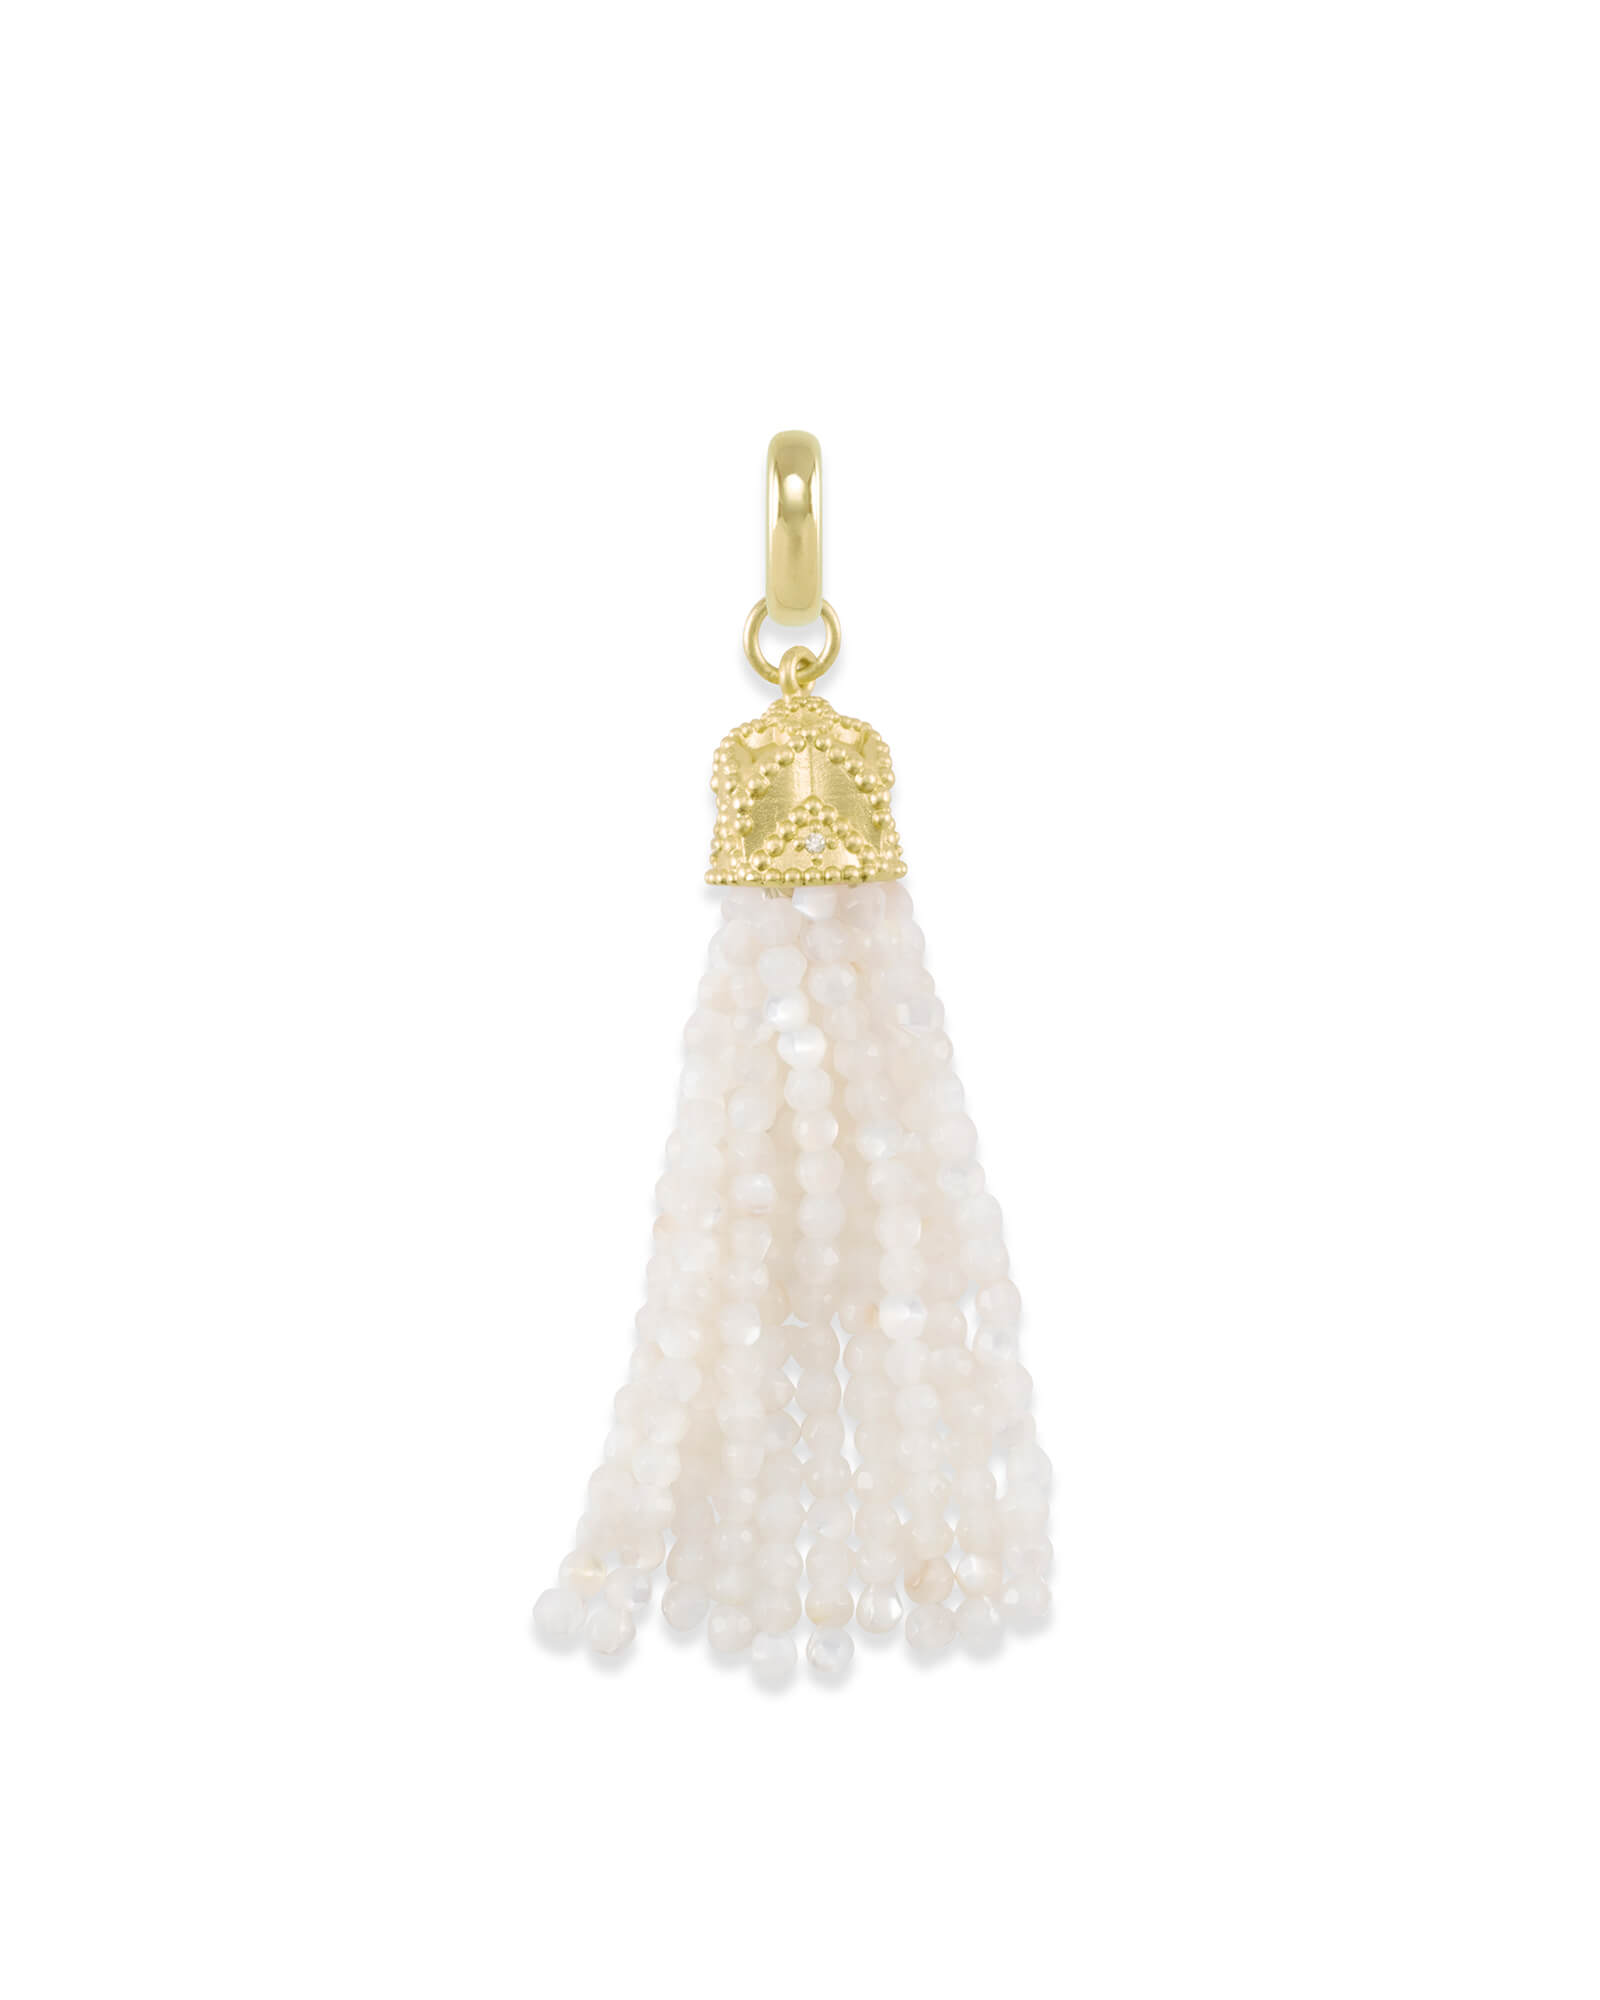 Beaded Gold Tassel Charm in Ivory Pearl